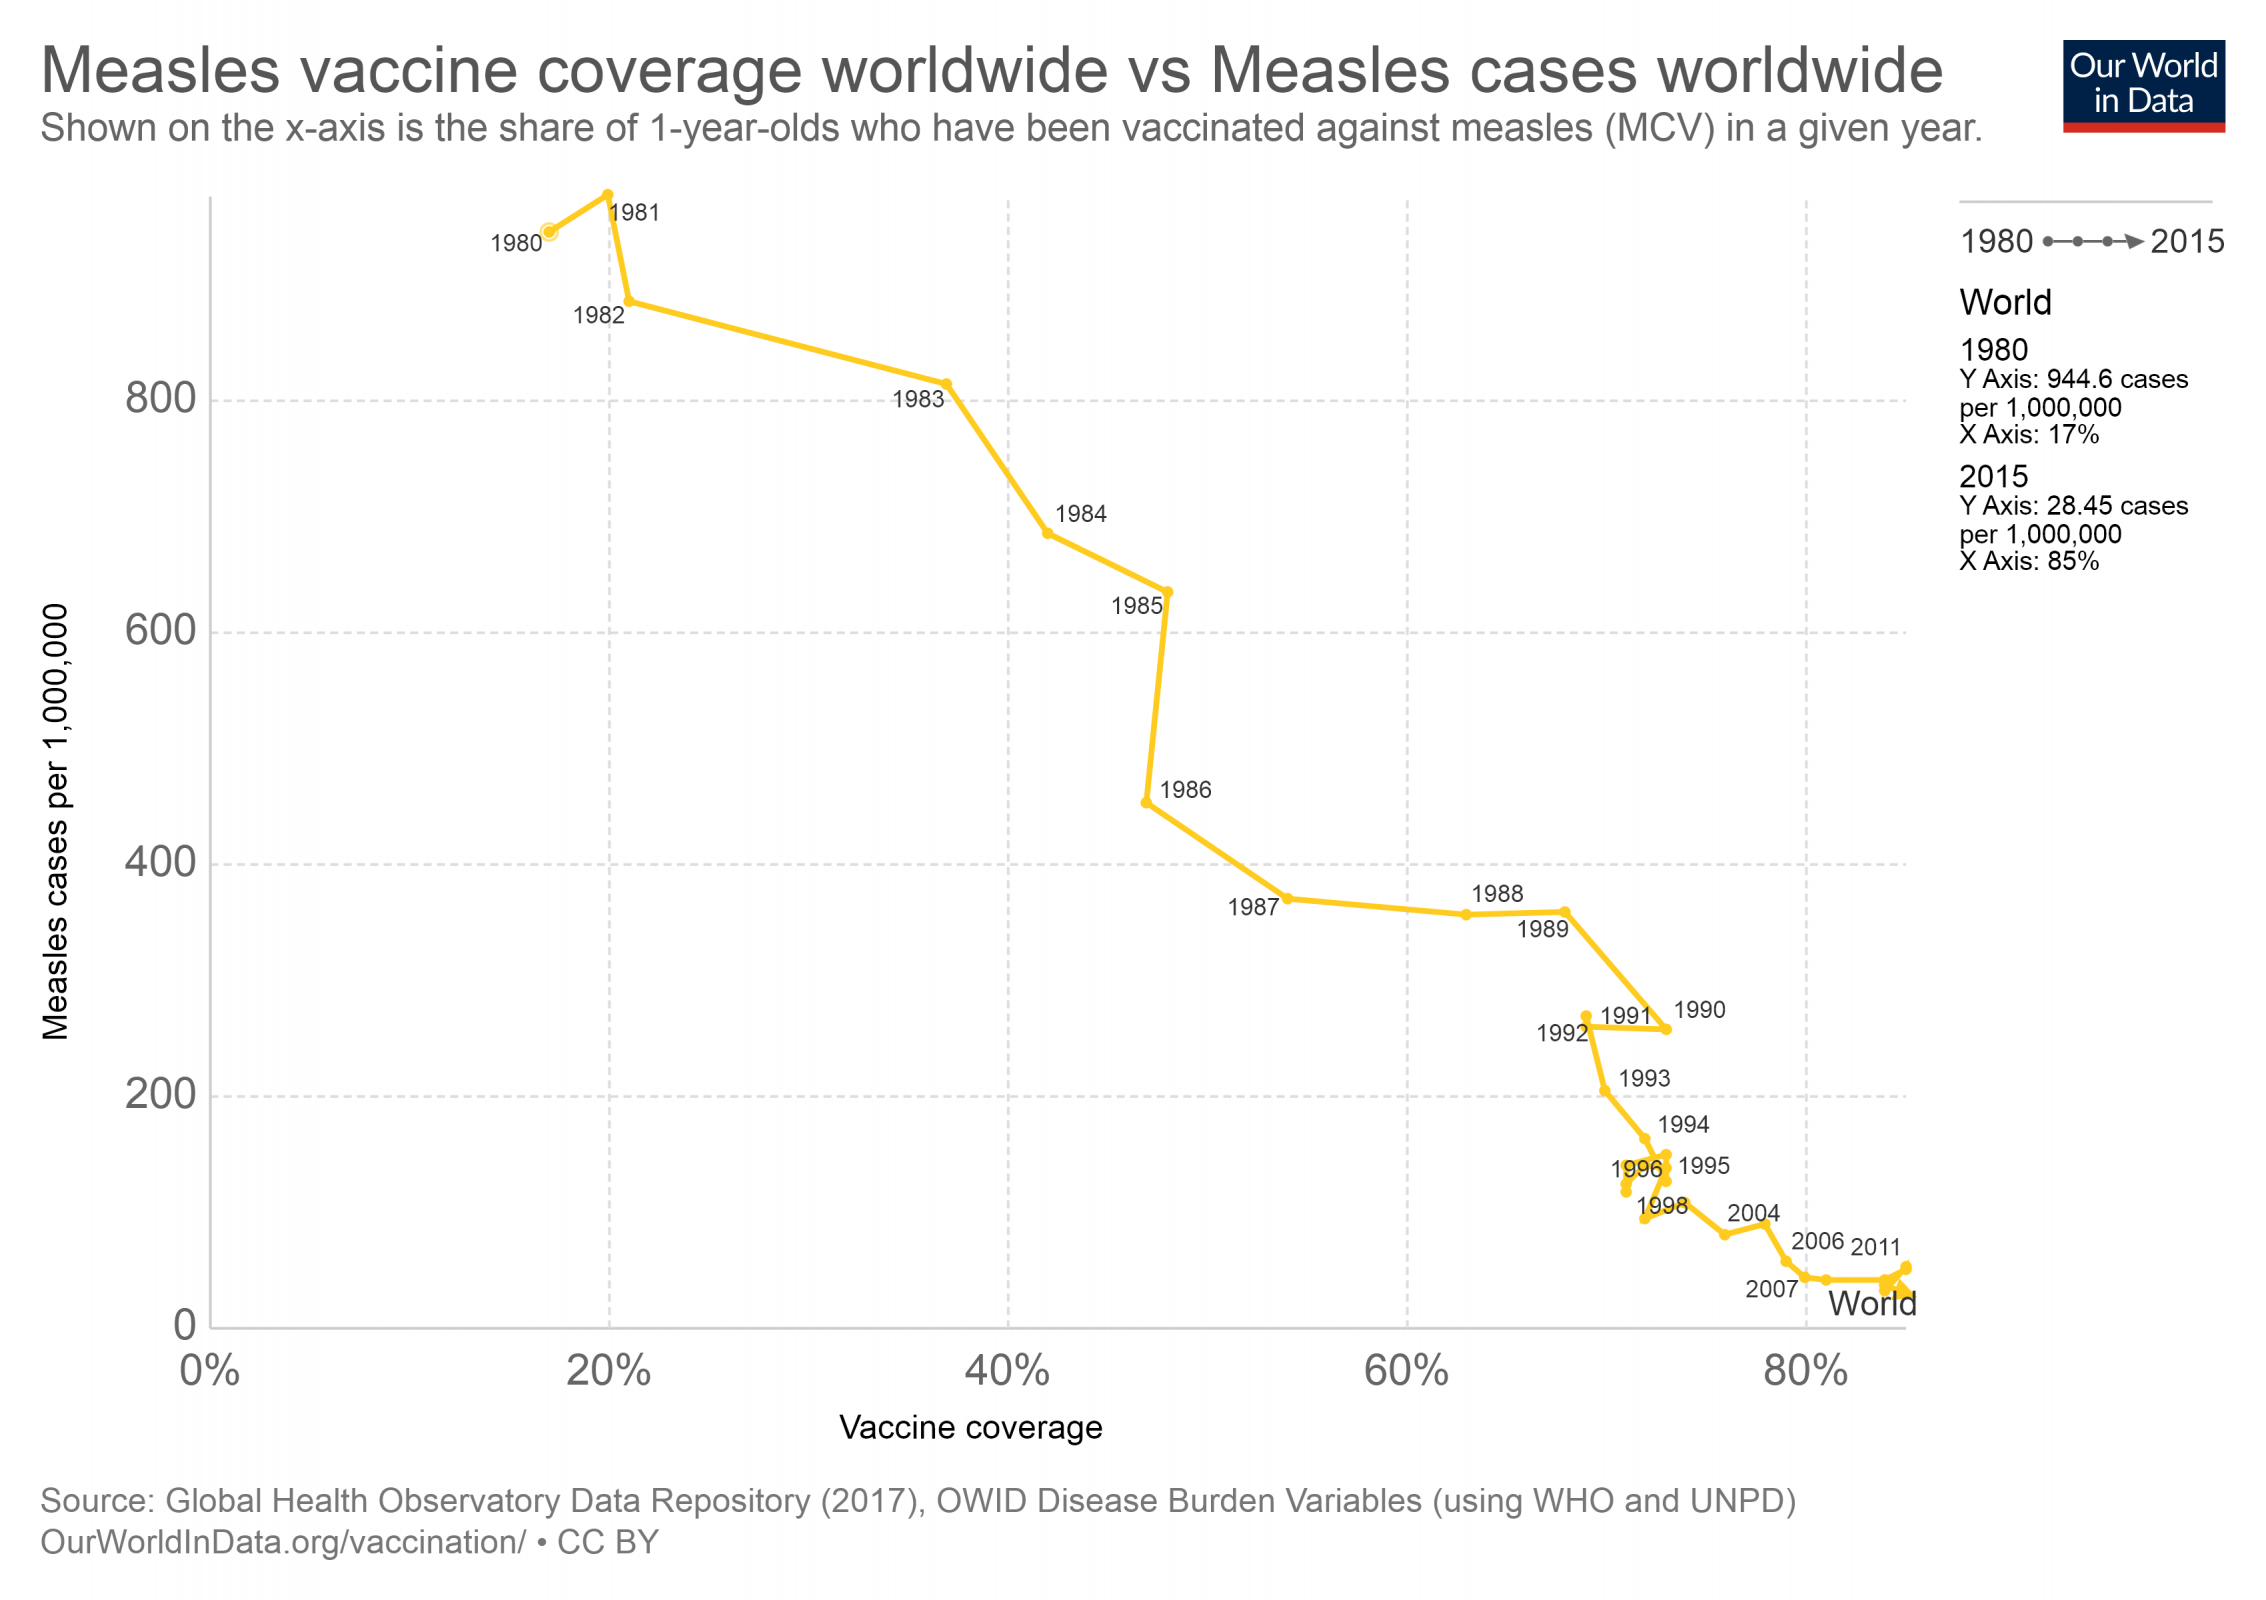 measles-vaccine-coverage-worldwide-vs-measles-cases-worldwide.png